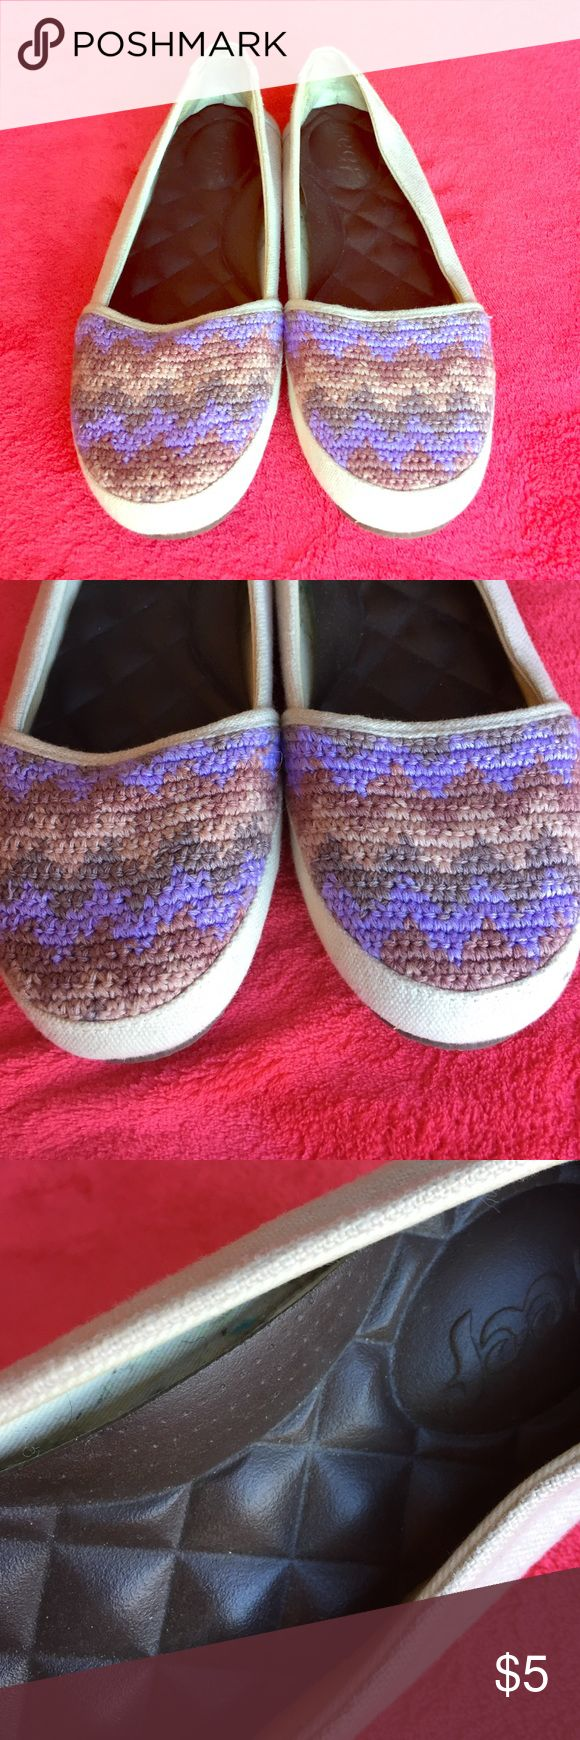 2/$15 🛍 Reef slippers size 6.5 These Reef slippers have wonderful cushion on the sole for comfortable walking. They have been worn outside, so the sole is dirty. The inside of the shoe's glue has come unstuck, as seen in pictures. Reef Shoes Slippers